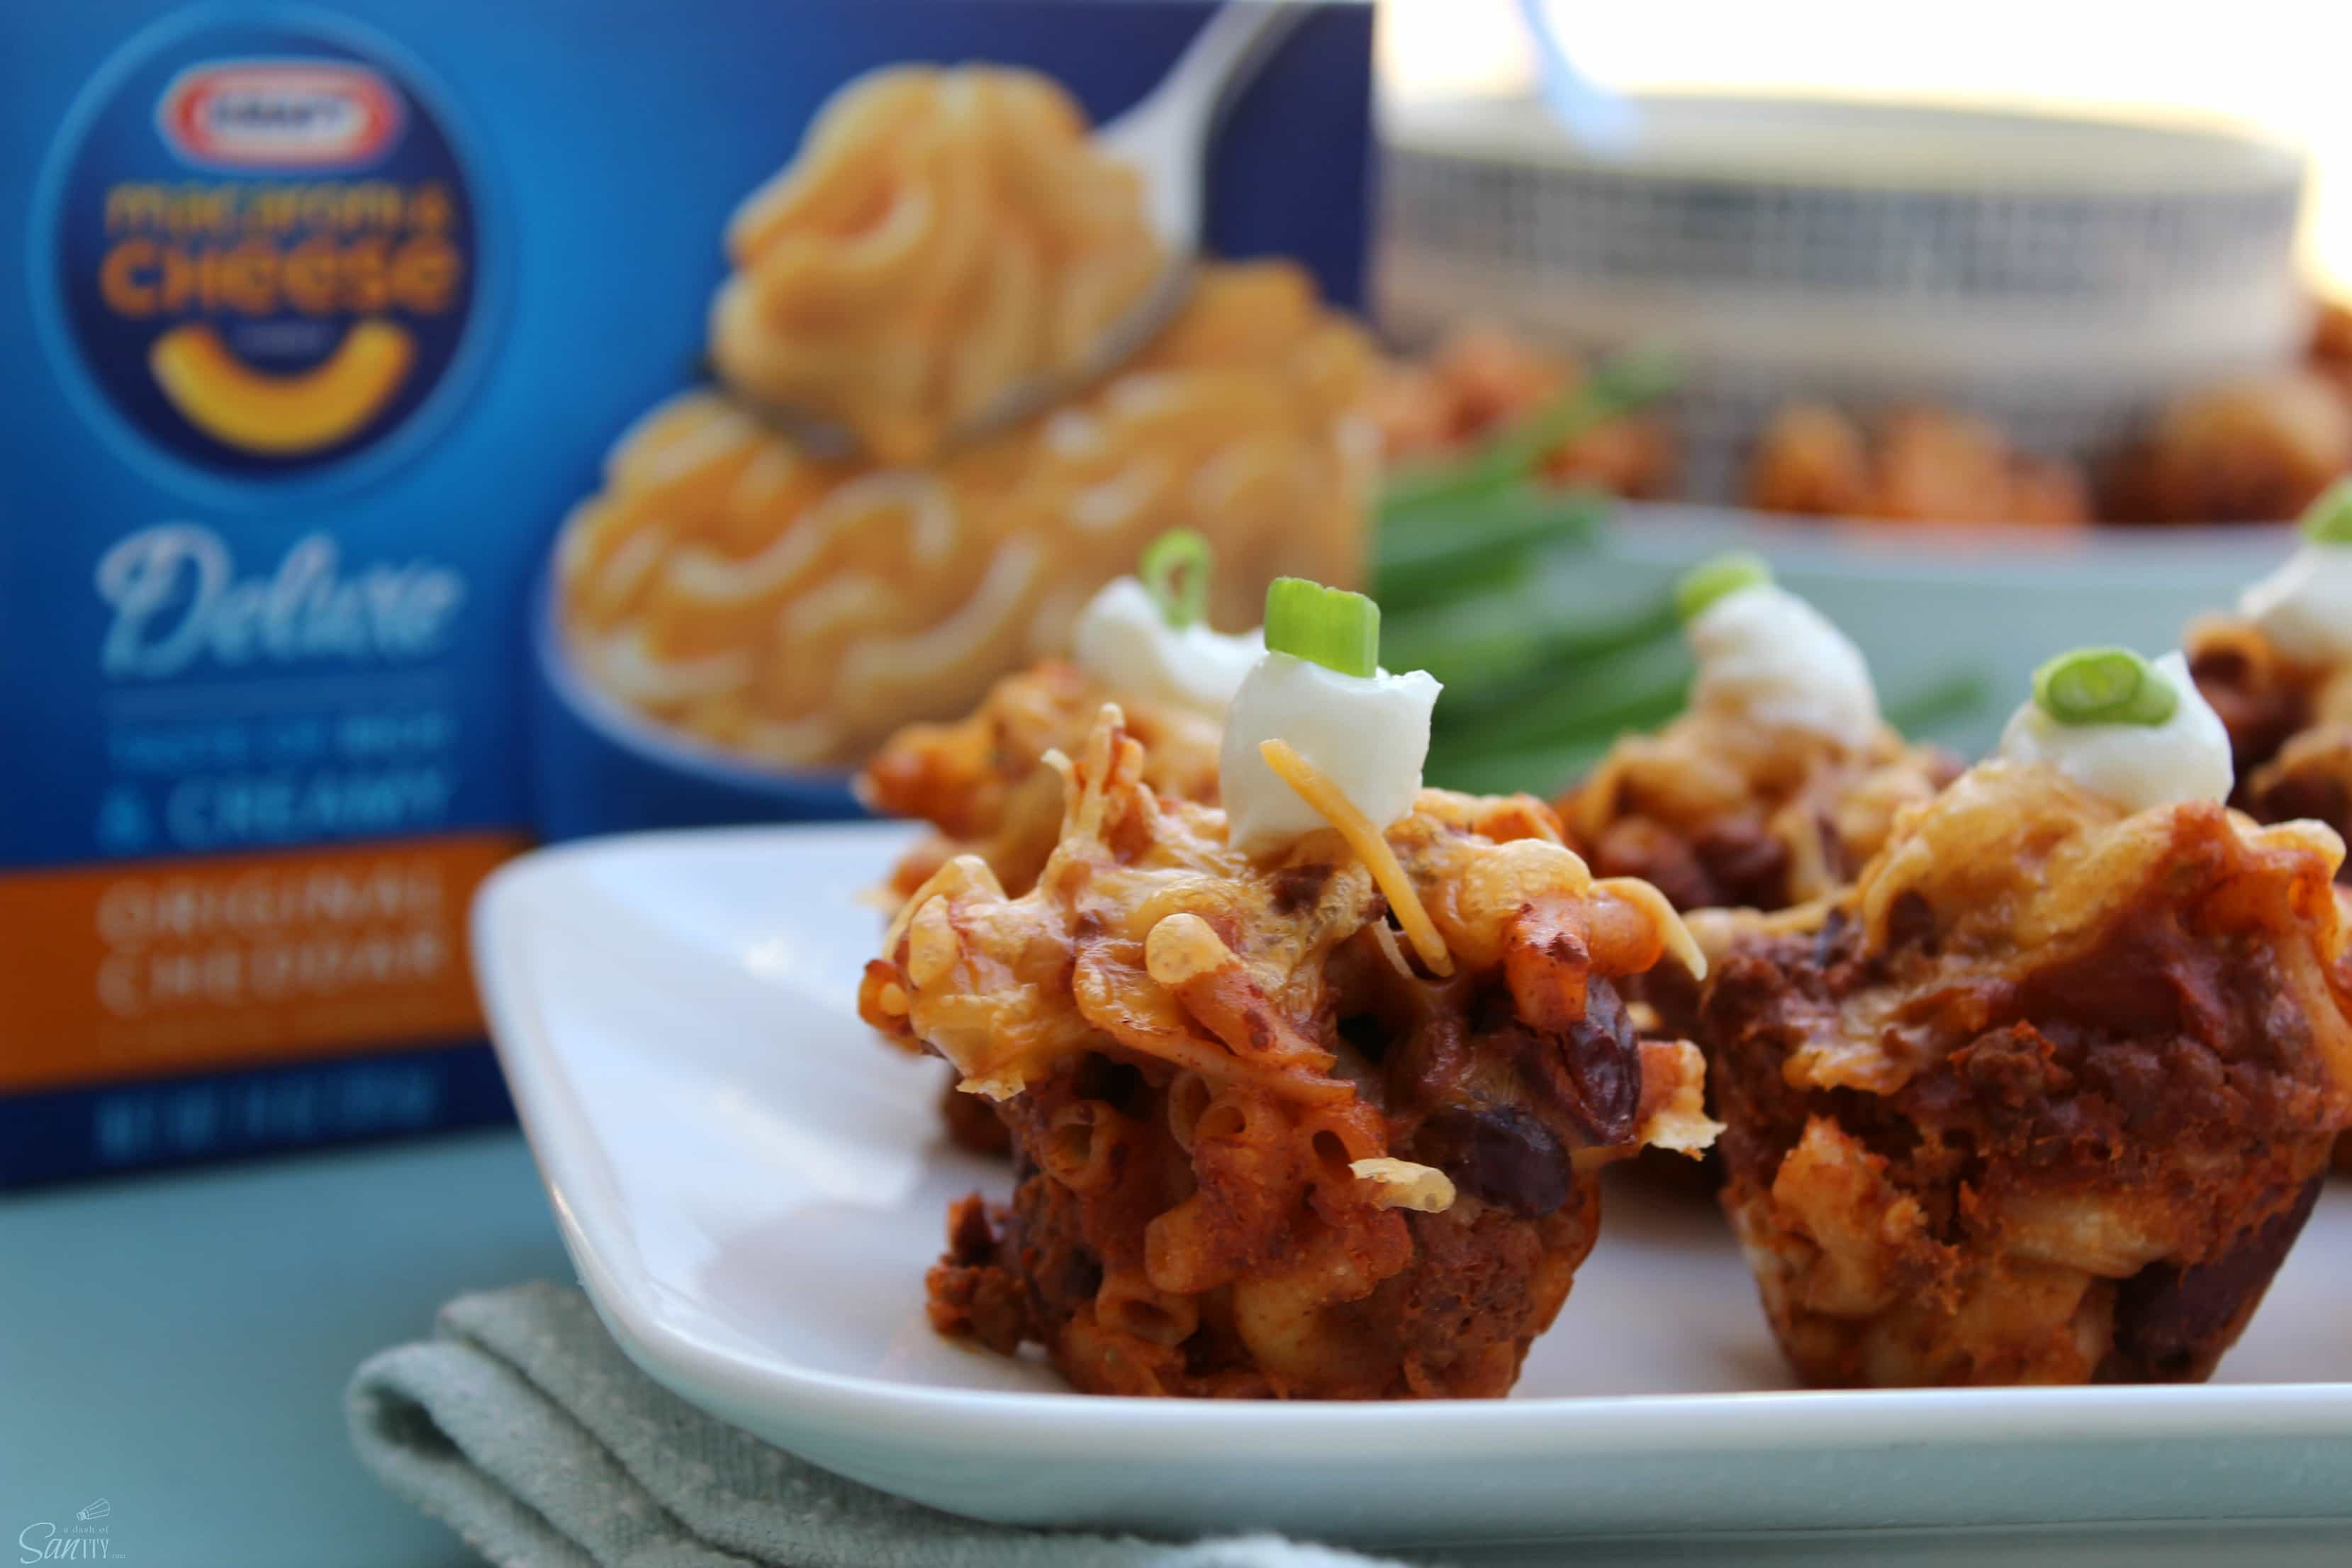 These Chili Cheese Mac Bites are perfect for a game day appetizer, a convenient bite for a party or a fun way to serve for dinner. An easy delicious recipe!